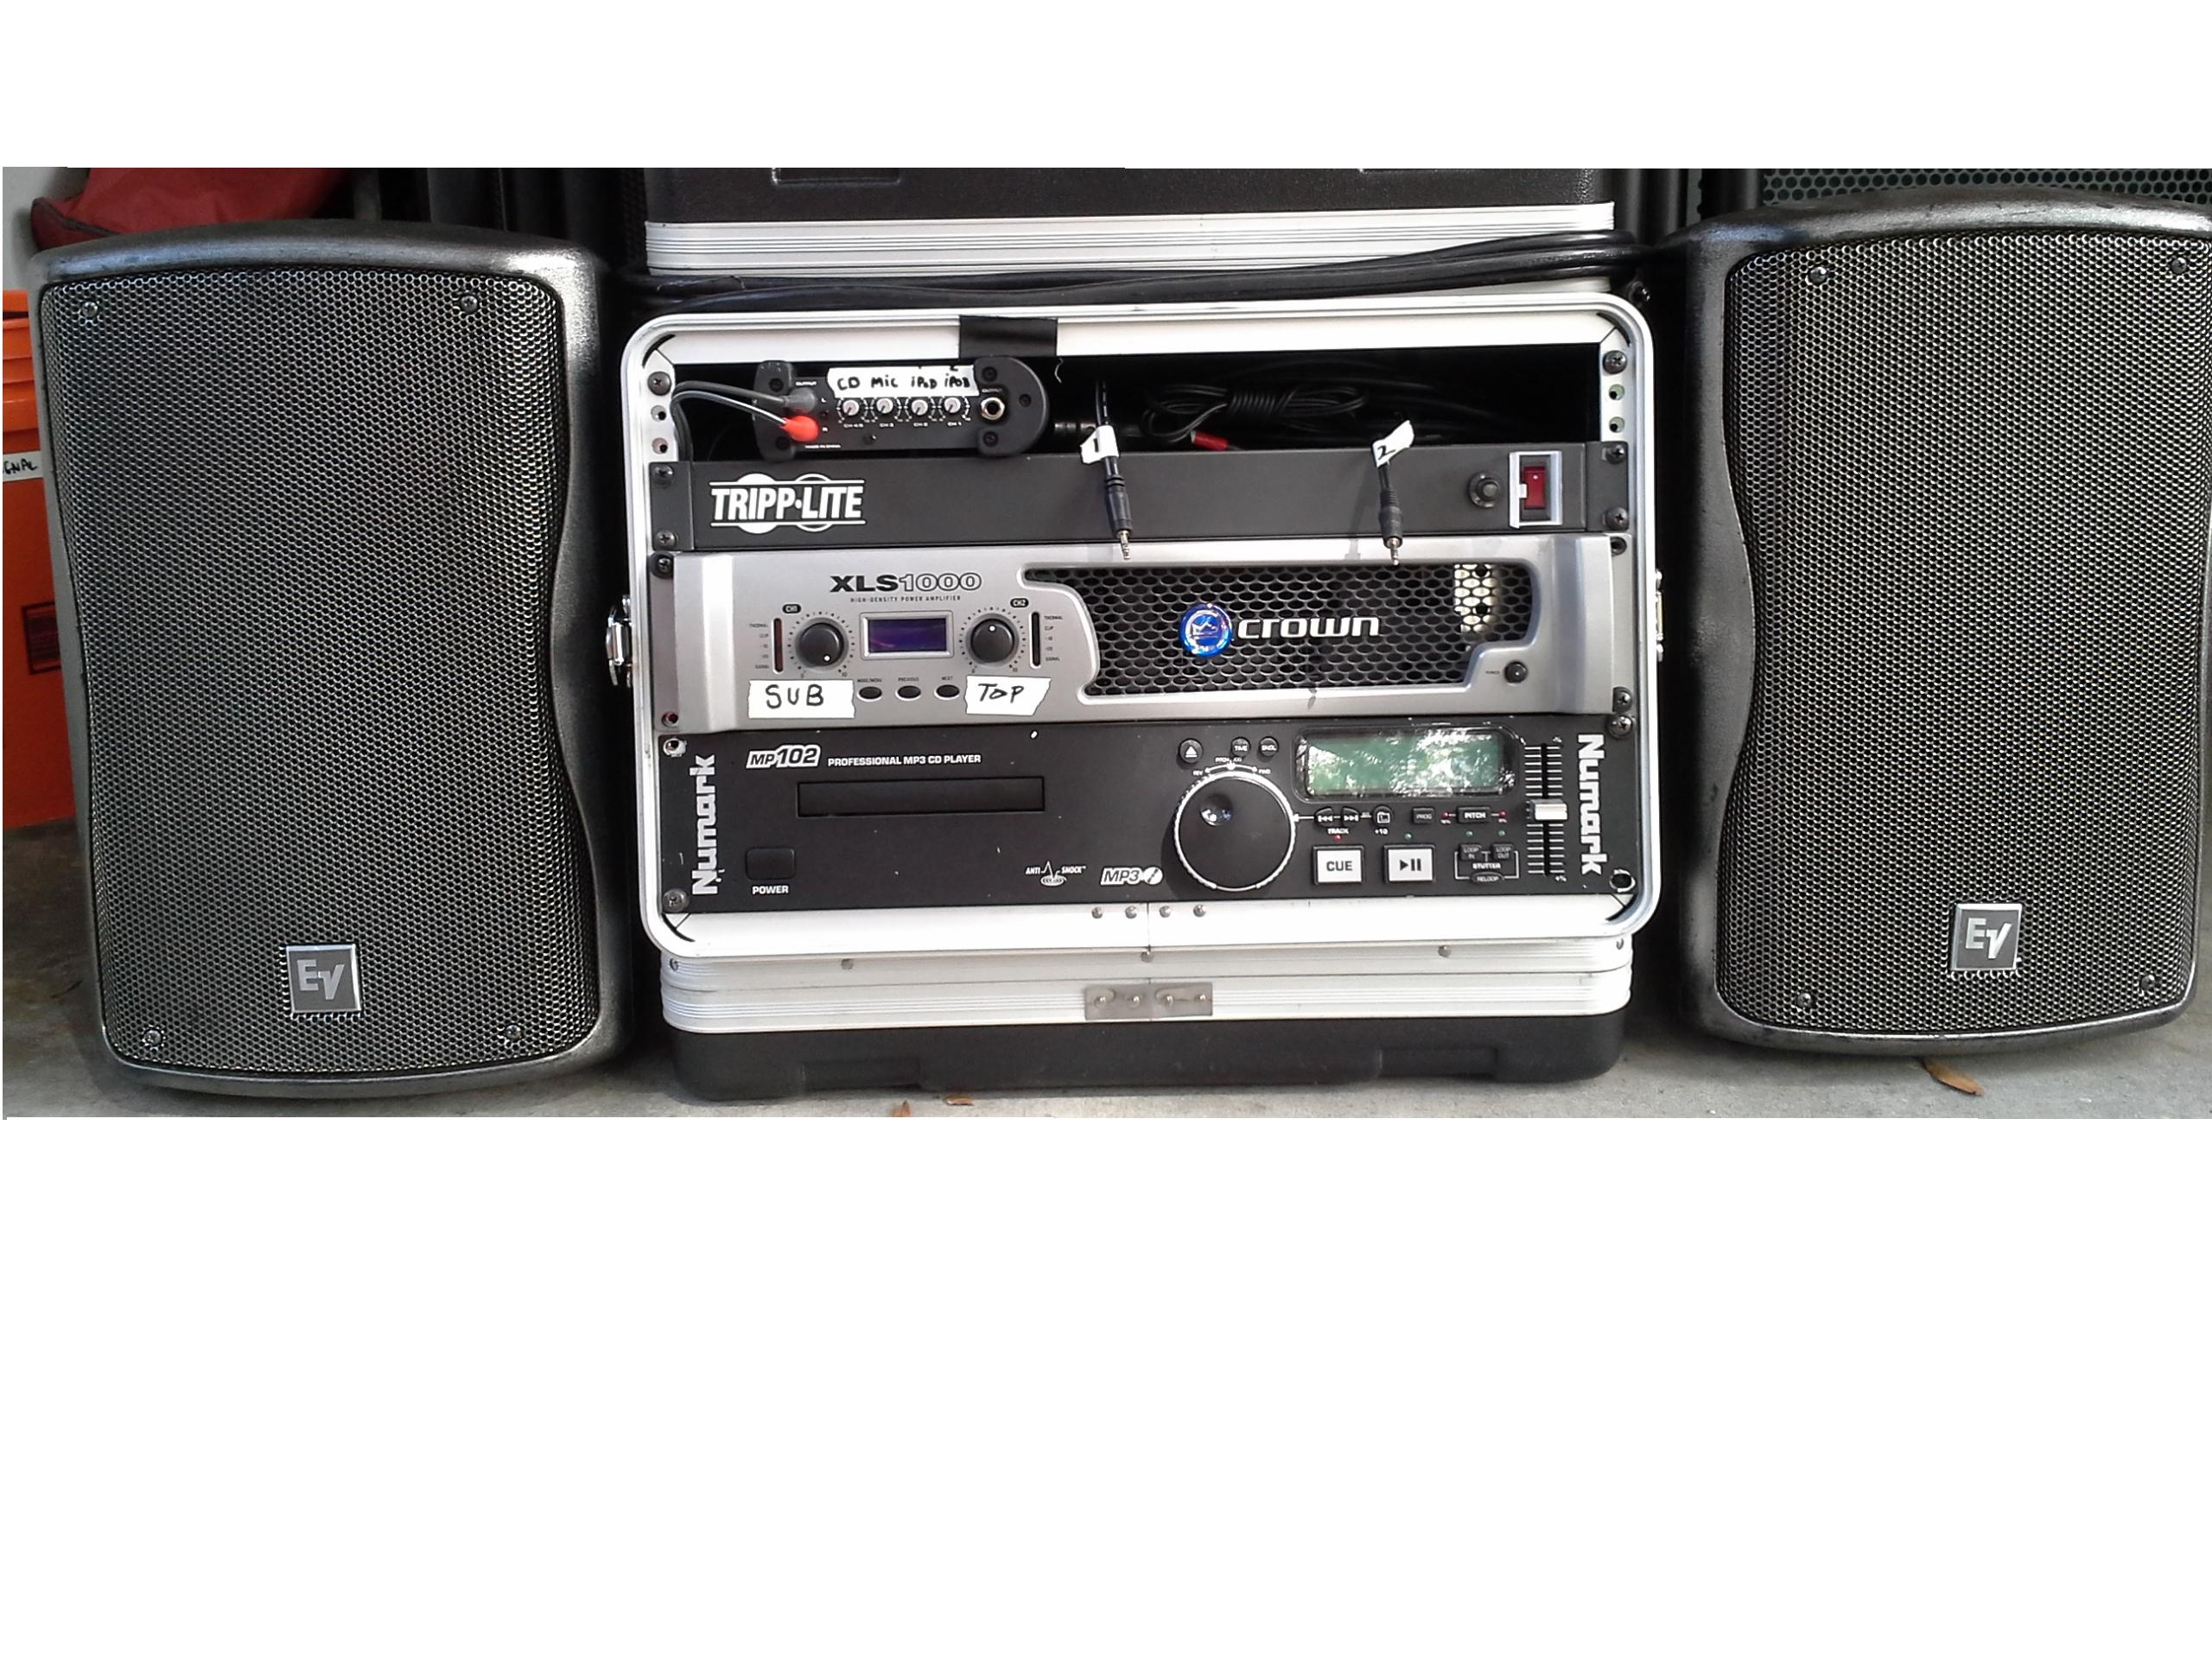 Loanables Audio Sound System Dj Equipment Rental Located